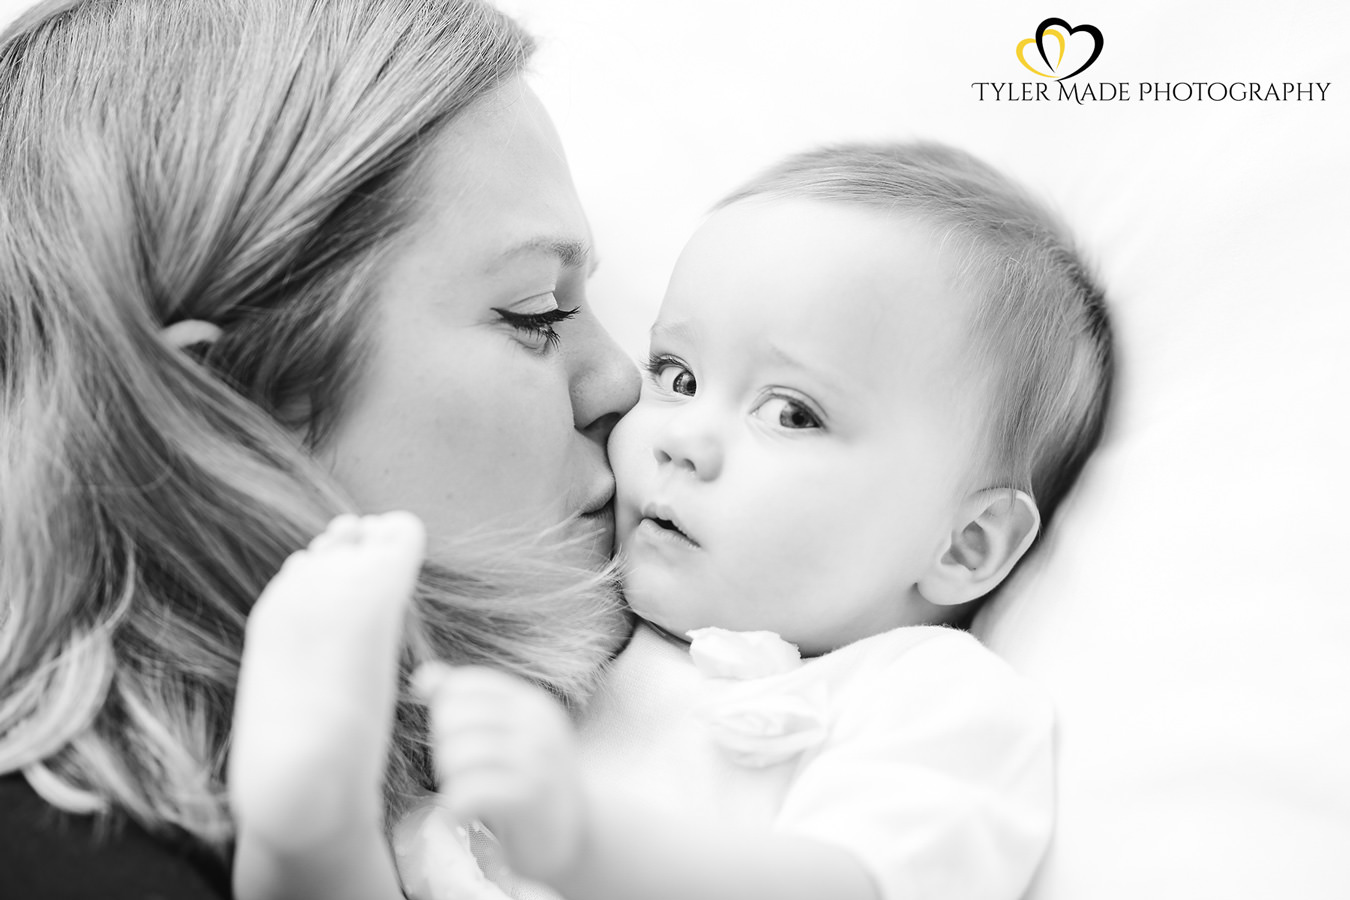 Mum kissing baby by Kent Family Photographer - Tyler Made Photography